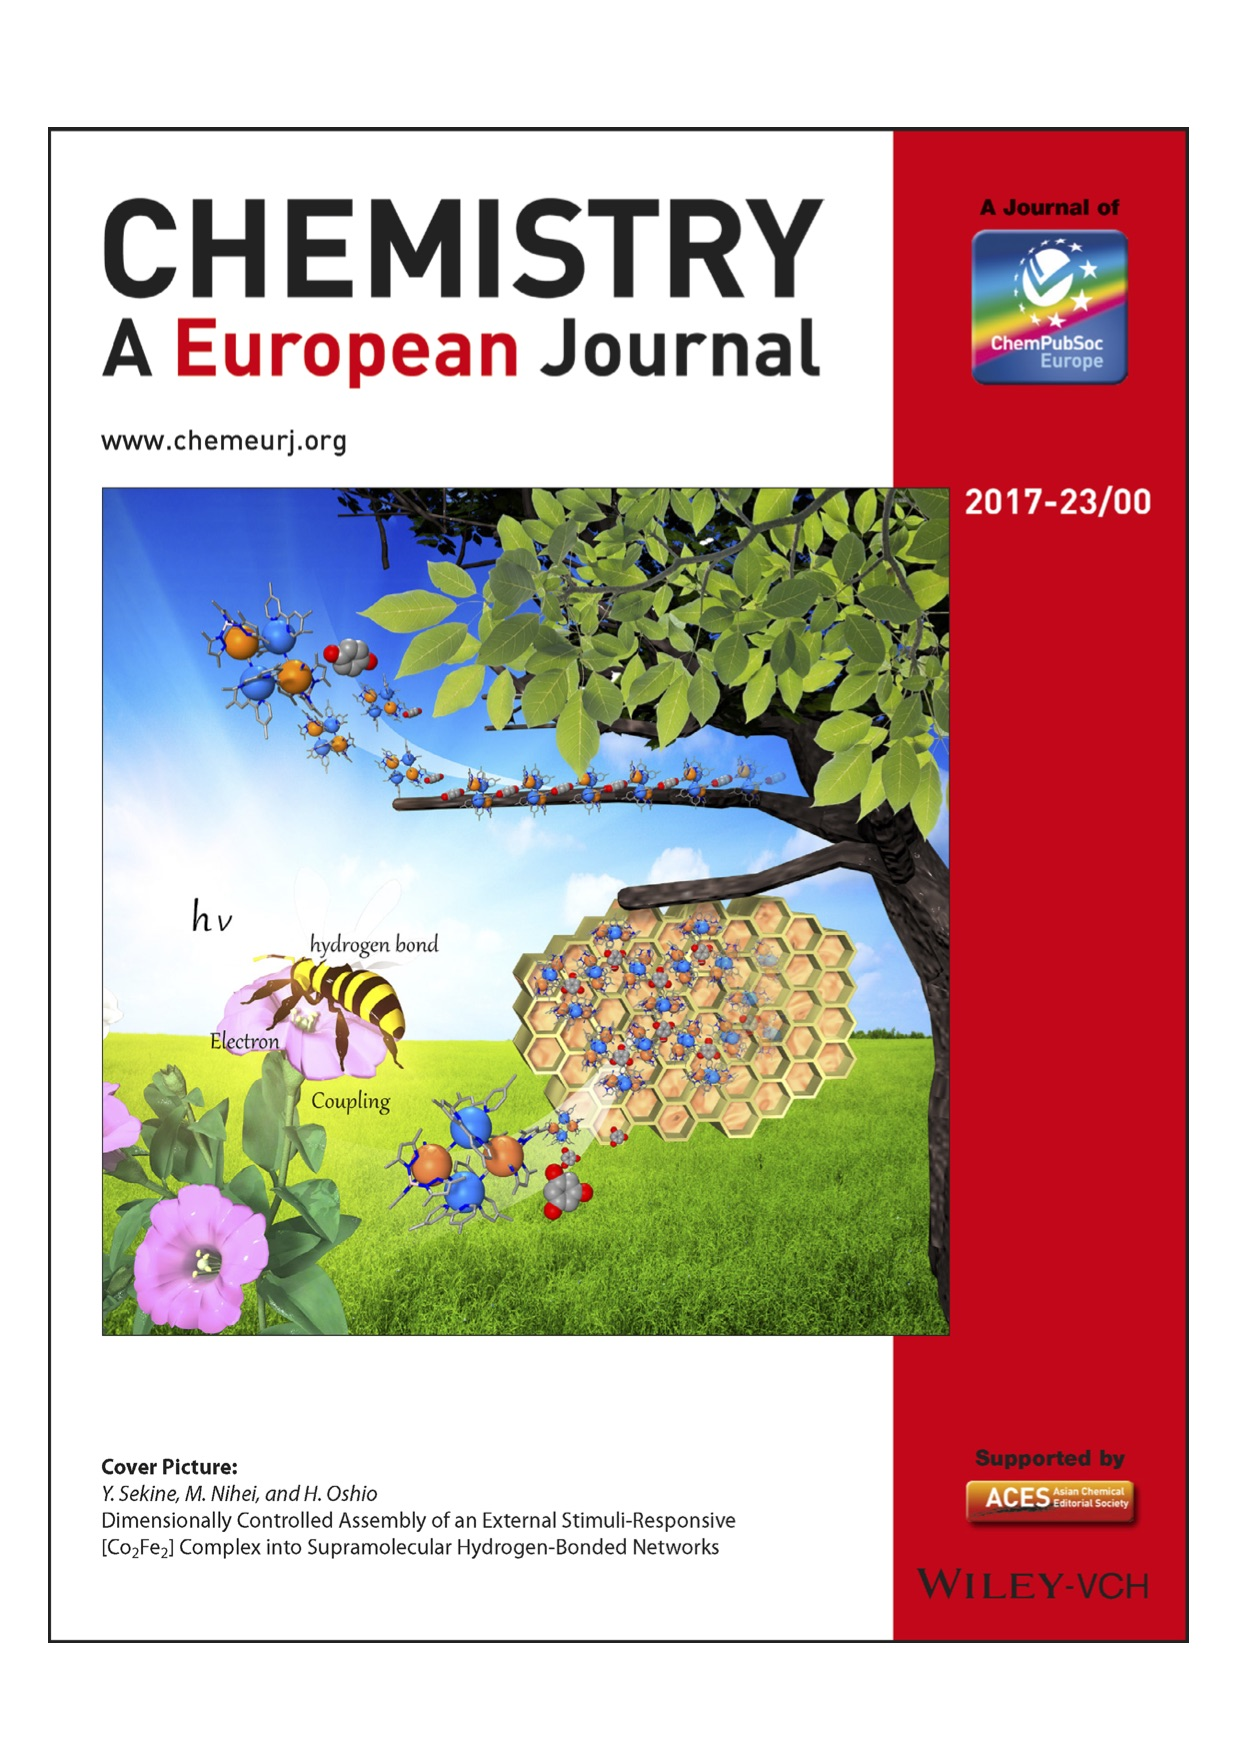 nihei group s paper was selected as a cover picture of chem eur j